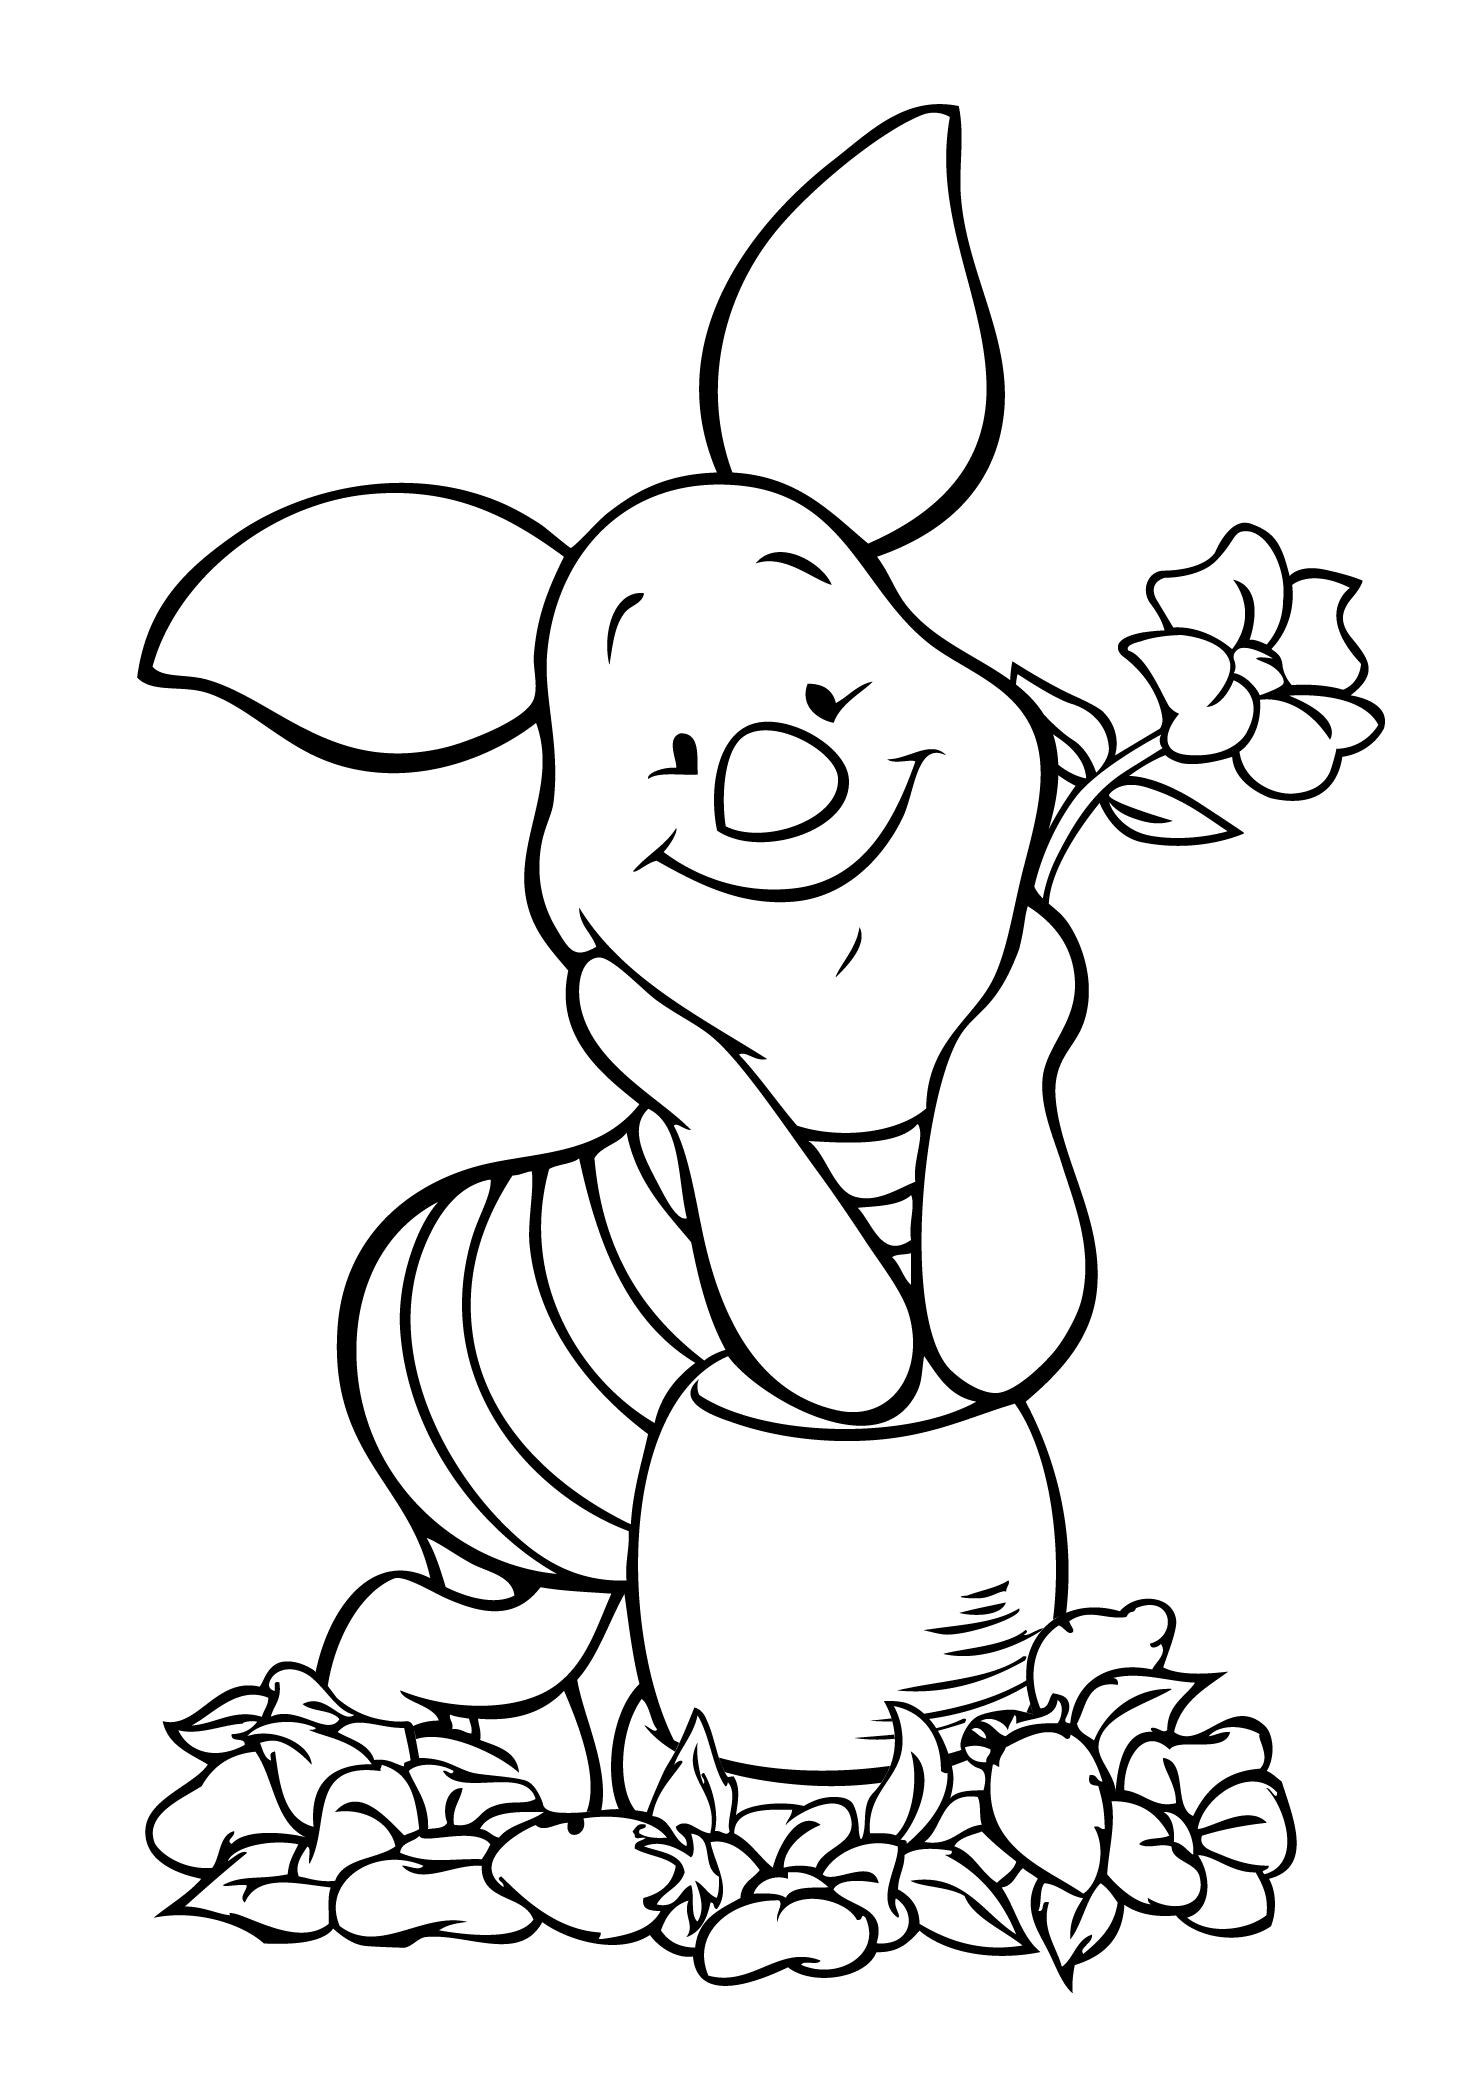 Winnie The Pooh And Piglet Coloring Pages At Getdrawings Com Free